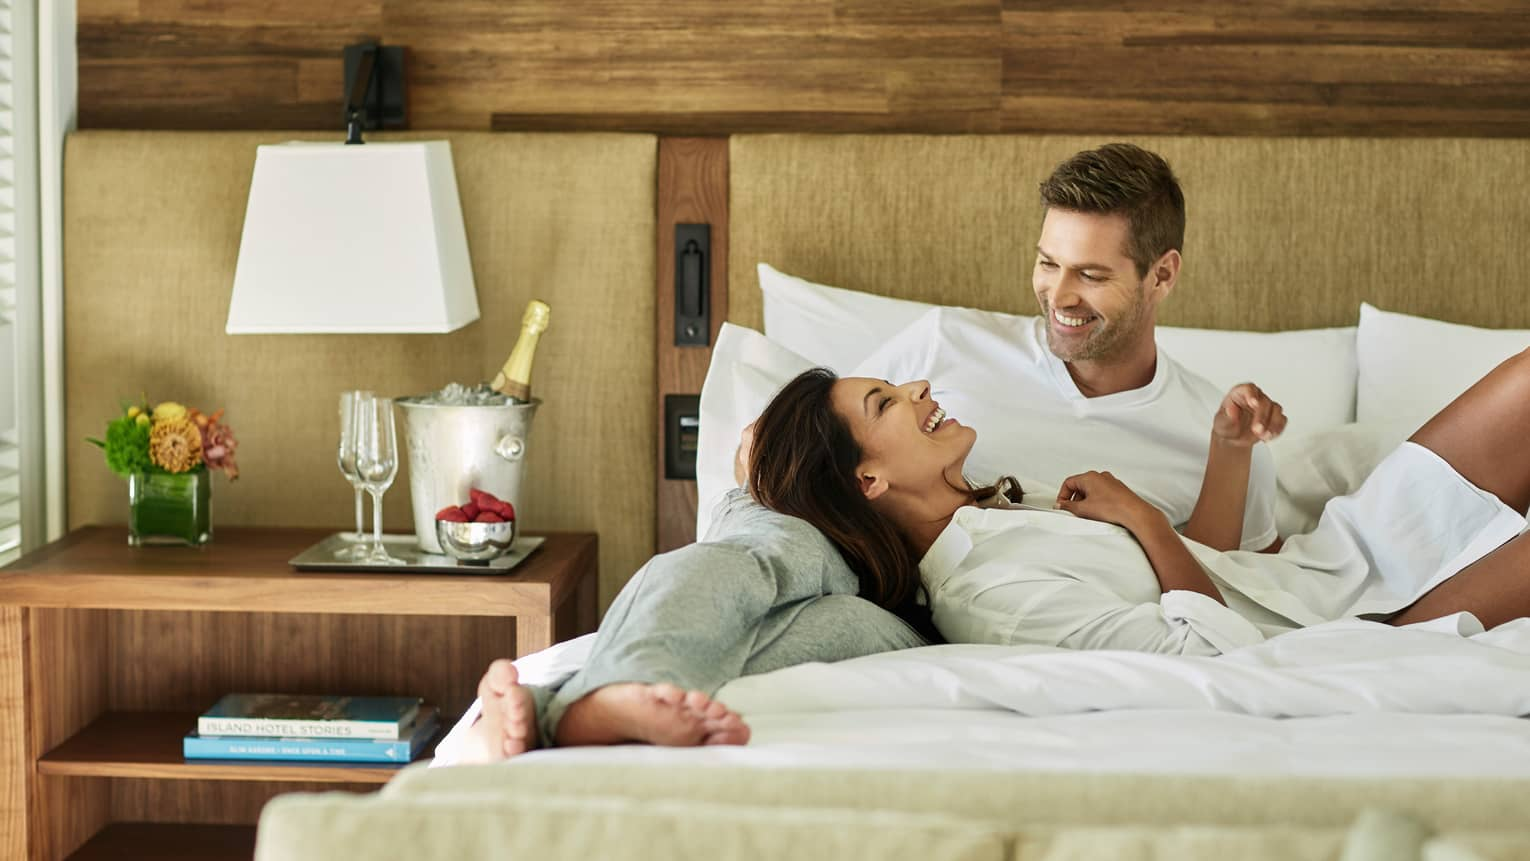 Woman and man laugh, lounge on hotel room bed by Champagne, rustic wood wall